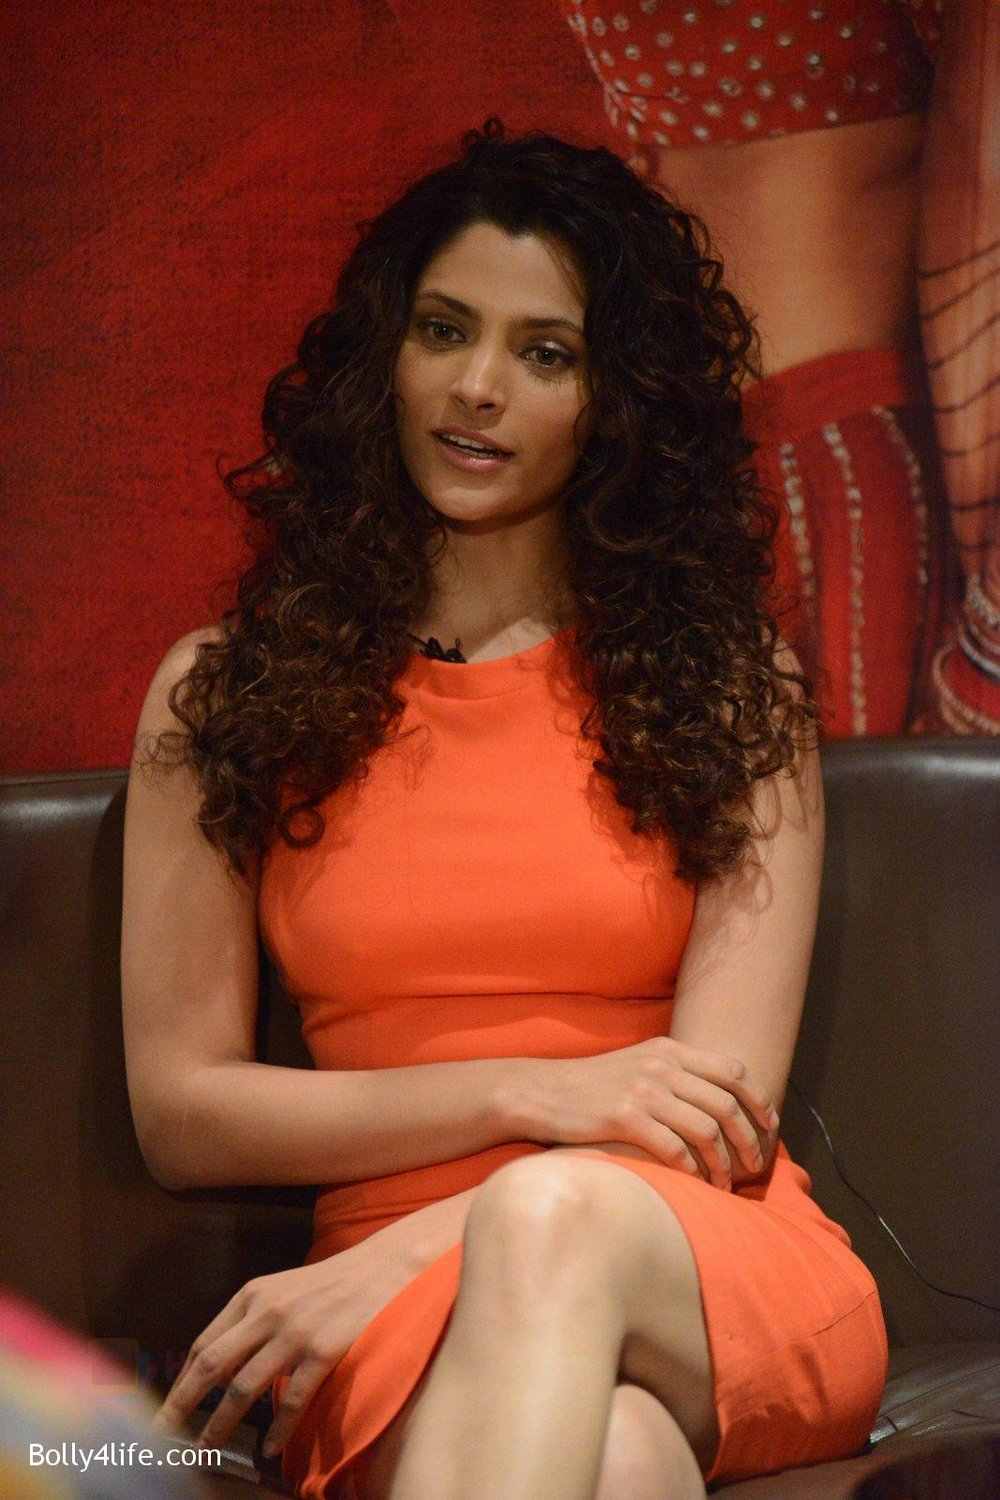 Saiyami-Kher-at-Mirzya-press-meet-in-Delhi-on-3rd-Oct-2016-93.jpg